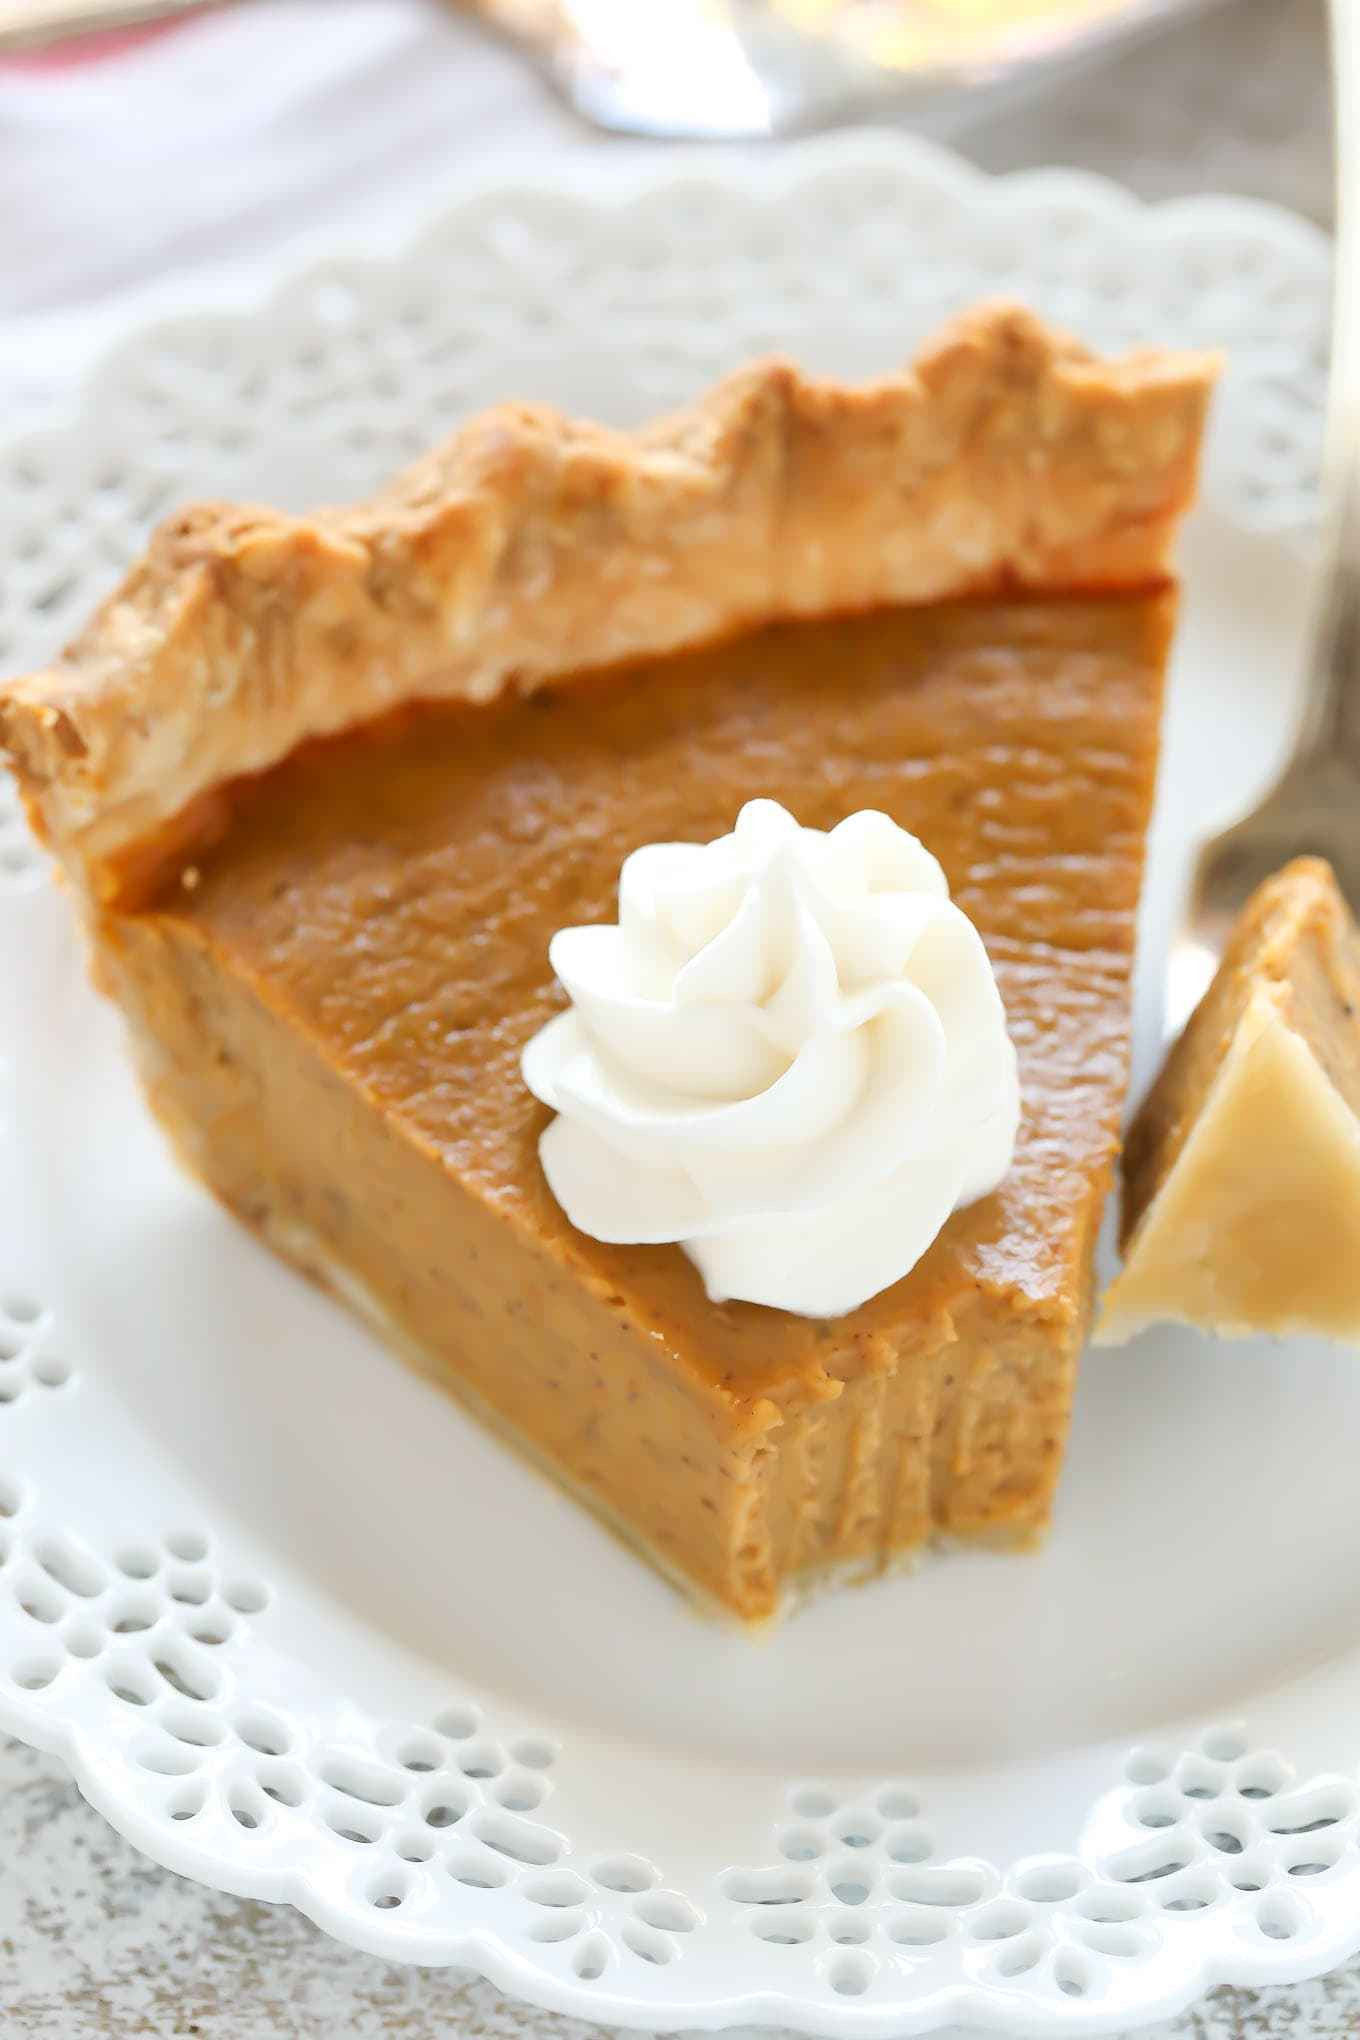 Costco Pies Thanksgiving  Pumpkin Pie Recipe